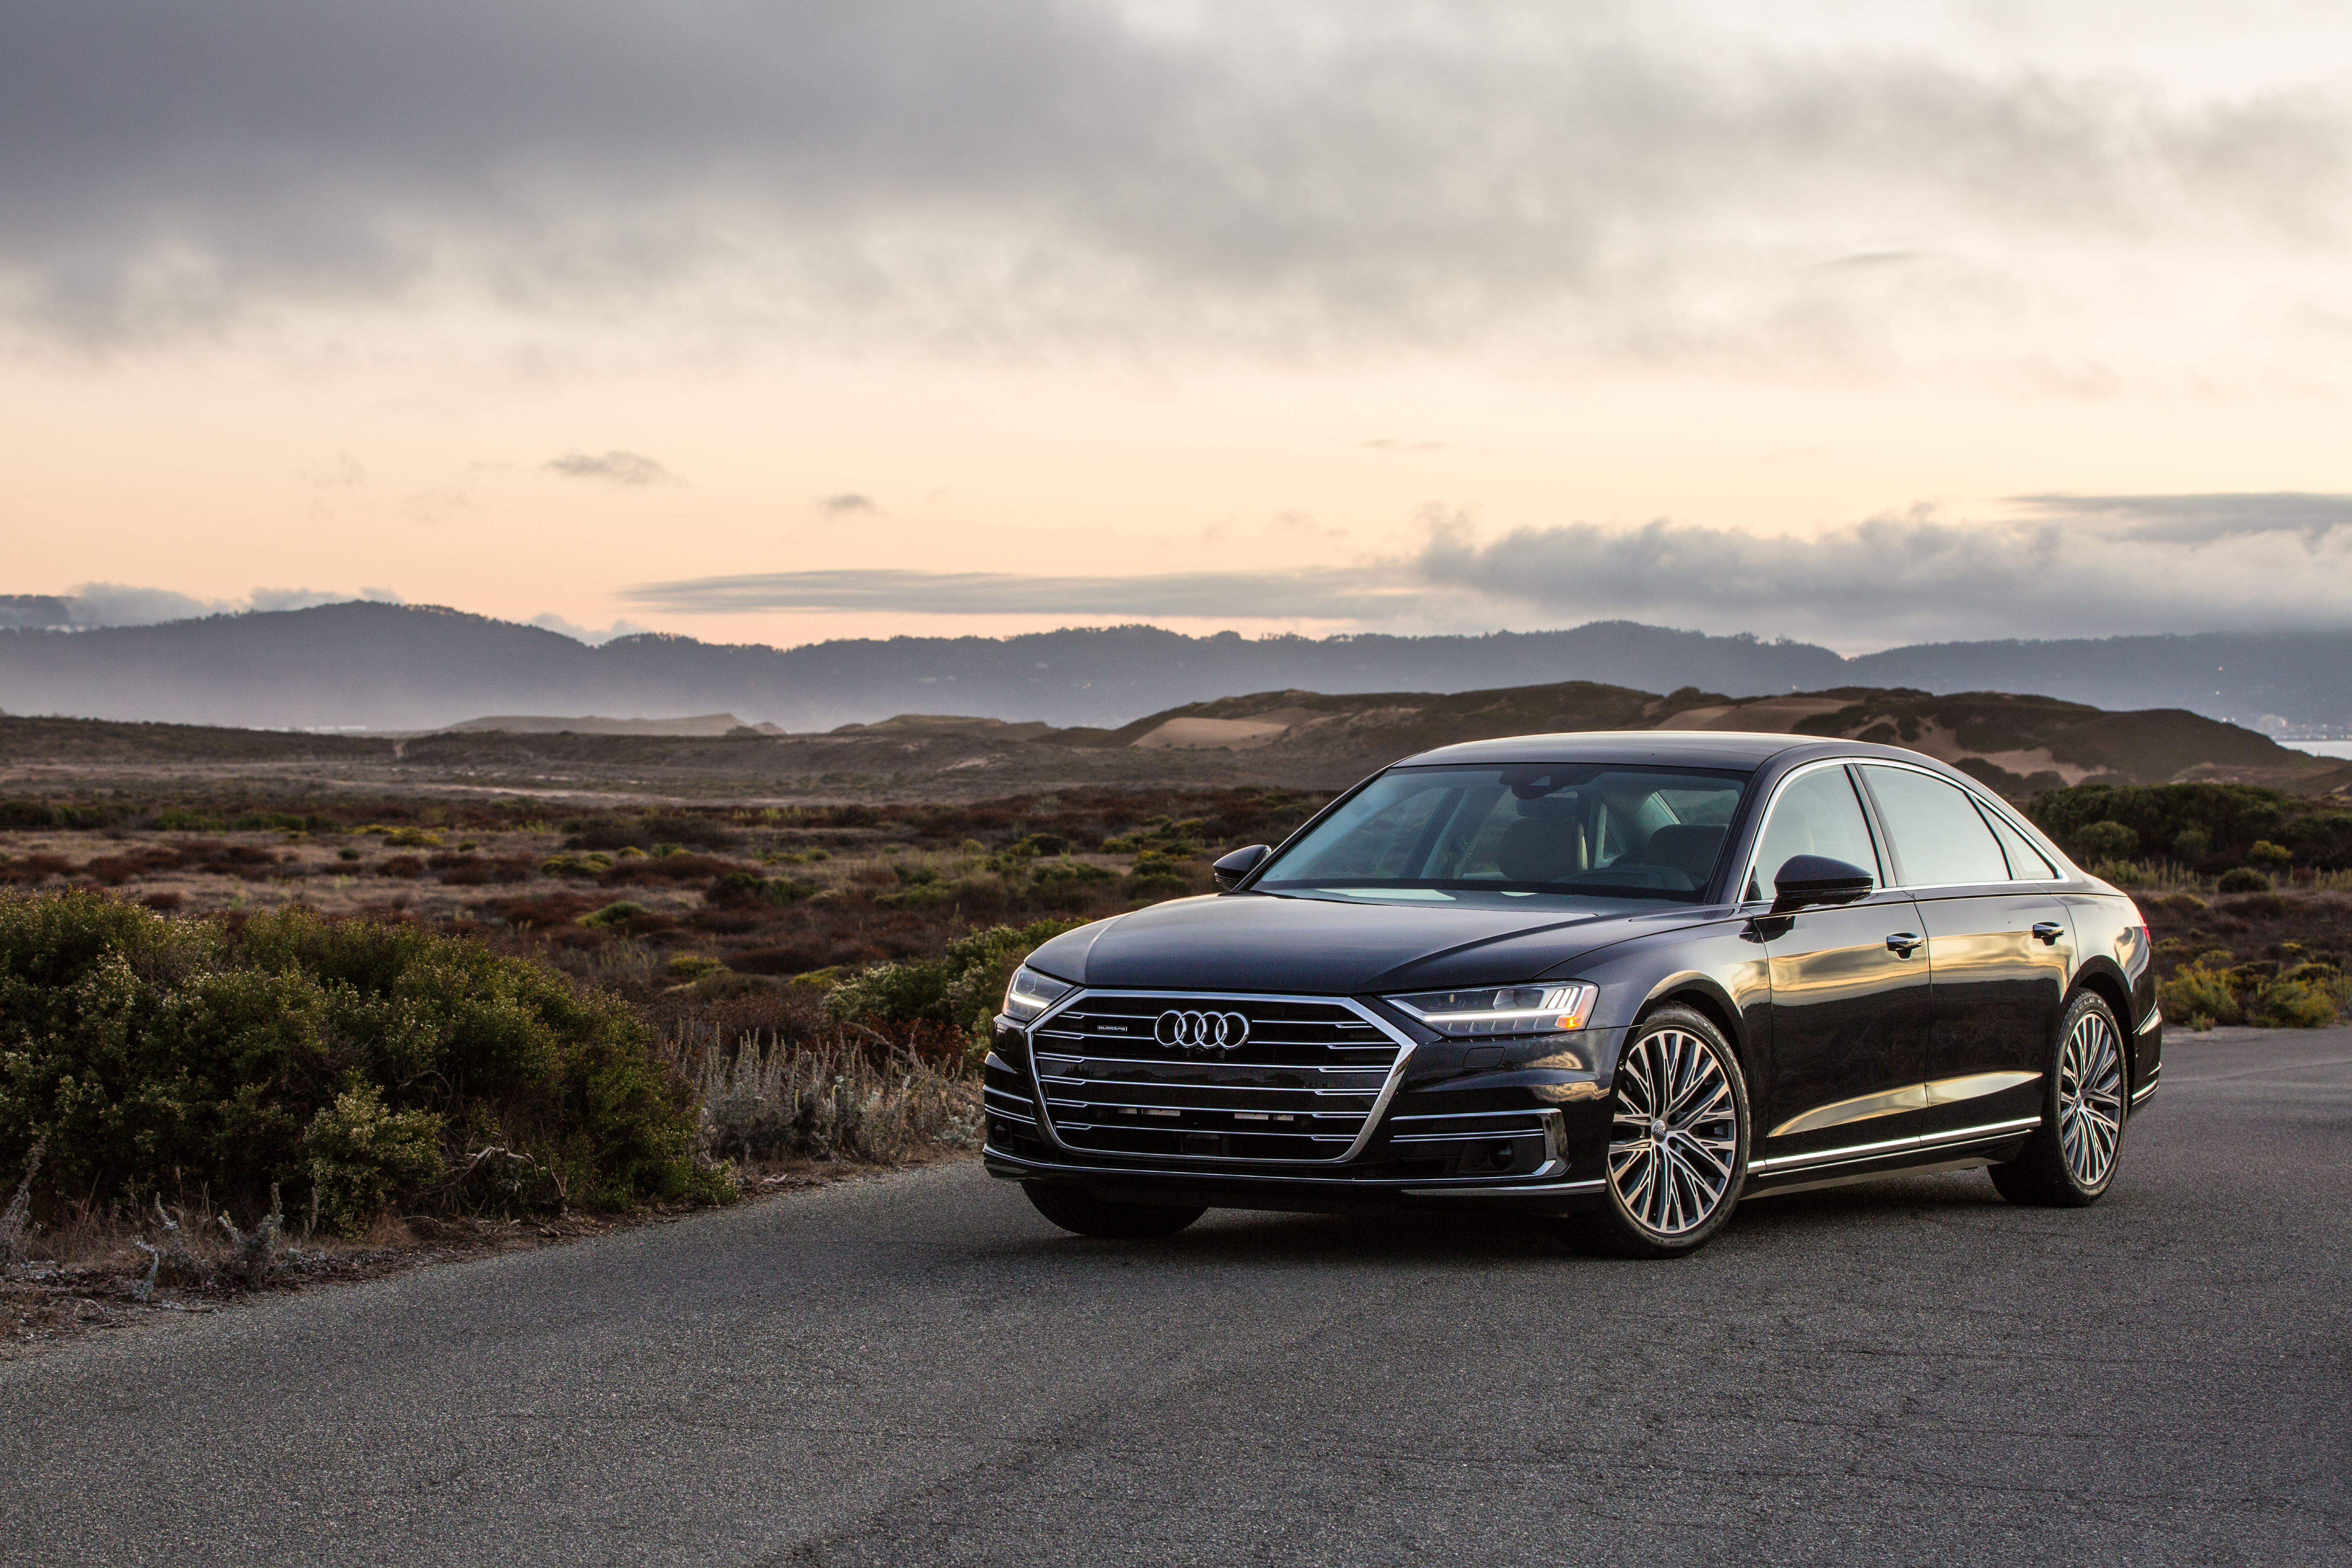 2019 Audi A8 Sedan Named to Wards 10 Best User Experience List